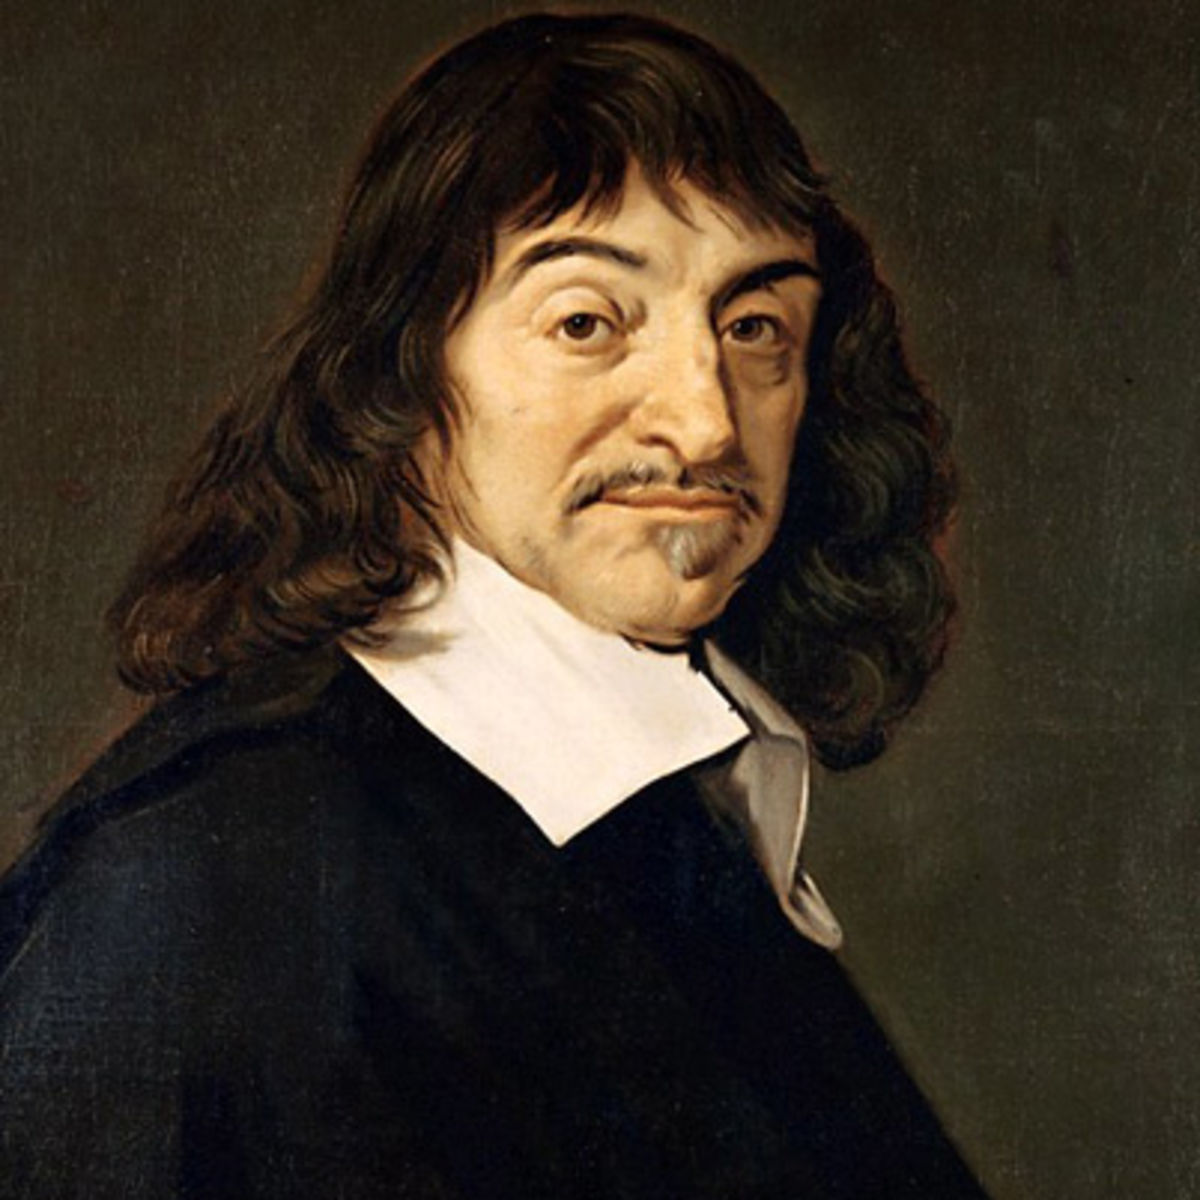 another one of descartes essays la dioptrique iuml iquest in la another one of descartes essays la dioptriqueiuml iquest in la thinglink